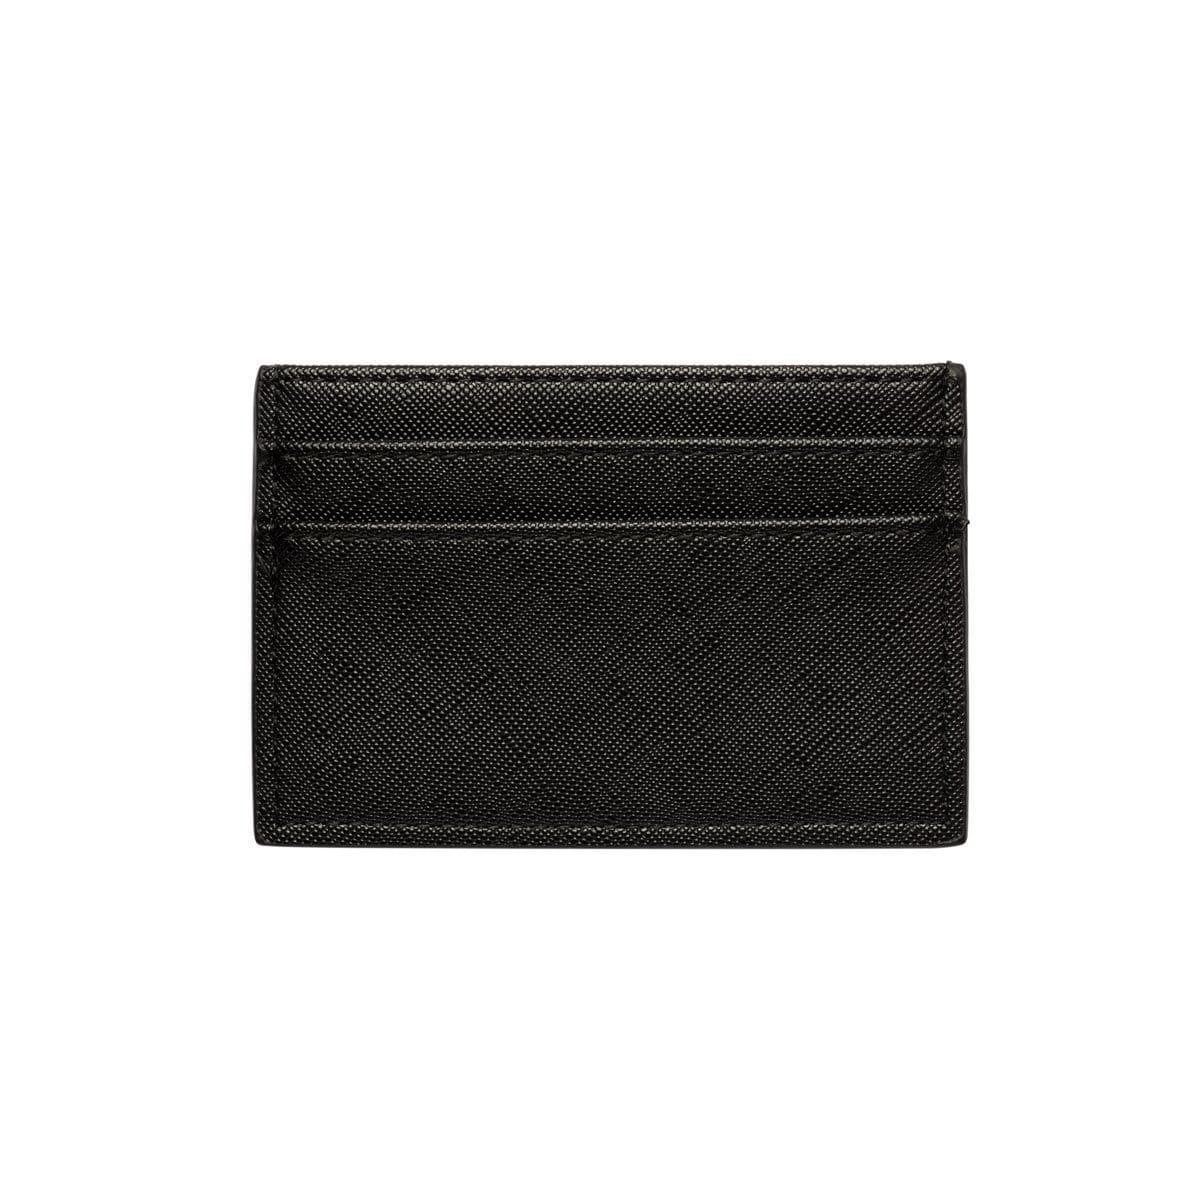 Jet Black Clea Card Holder